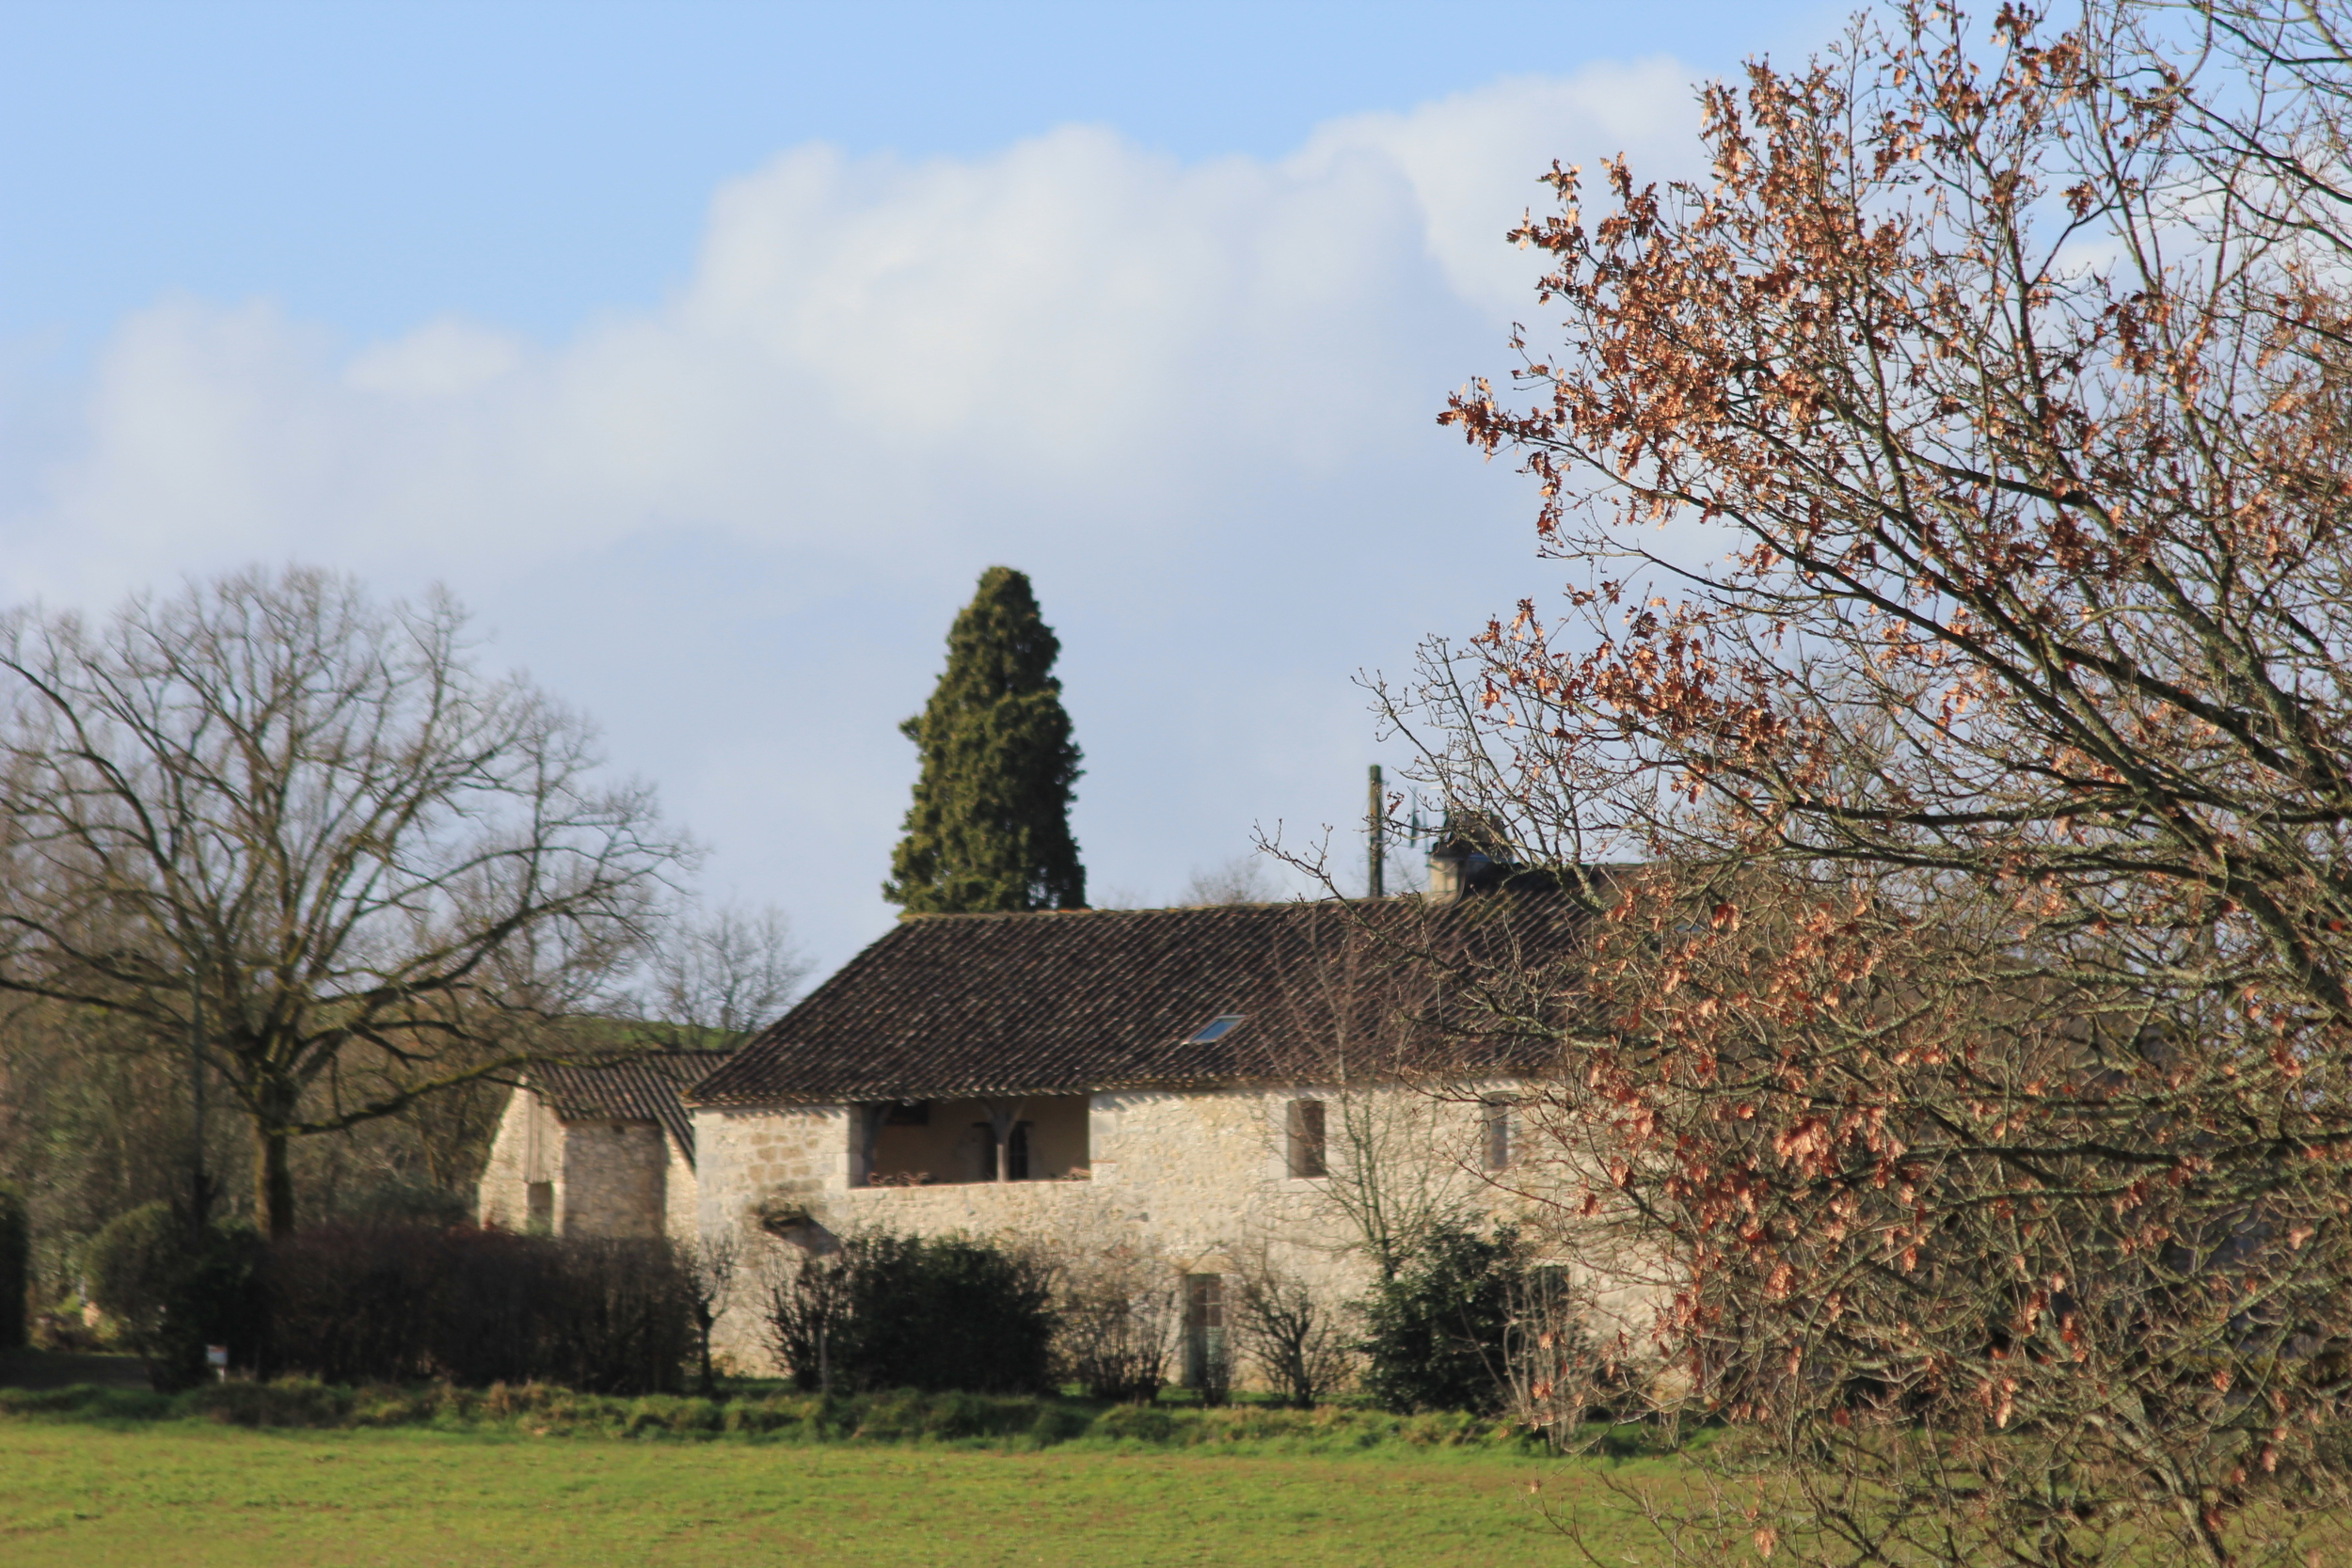 The French Farmhouse, East View. February 2016.